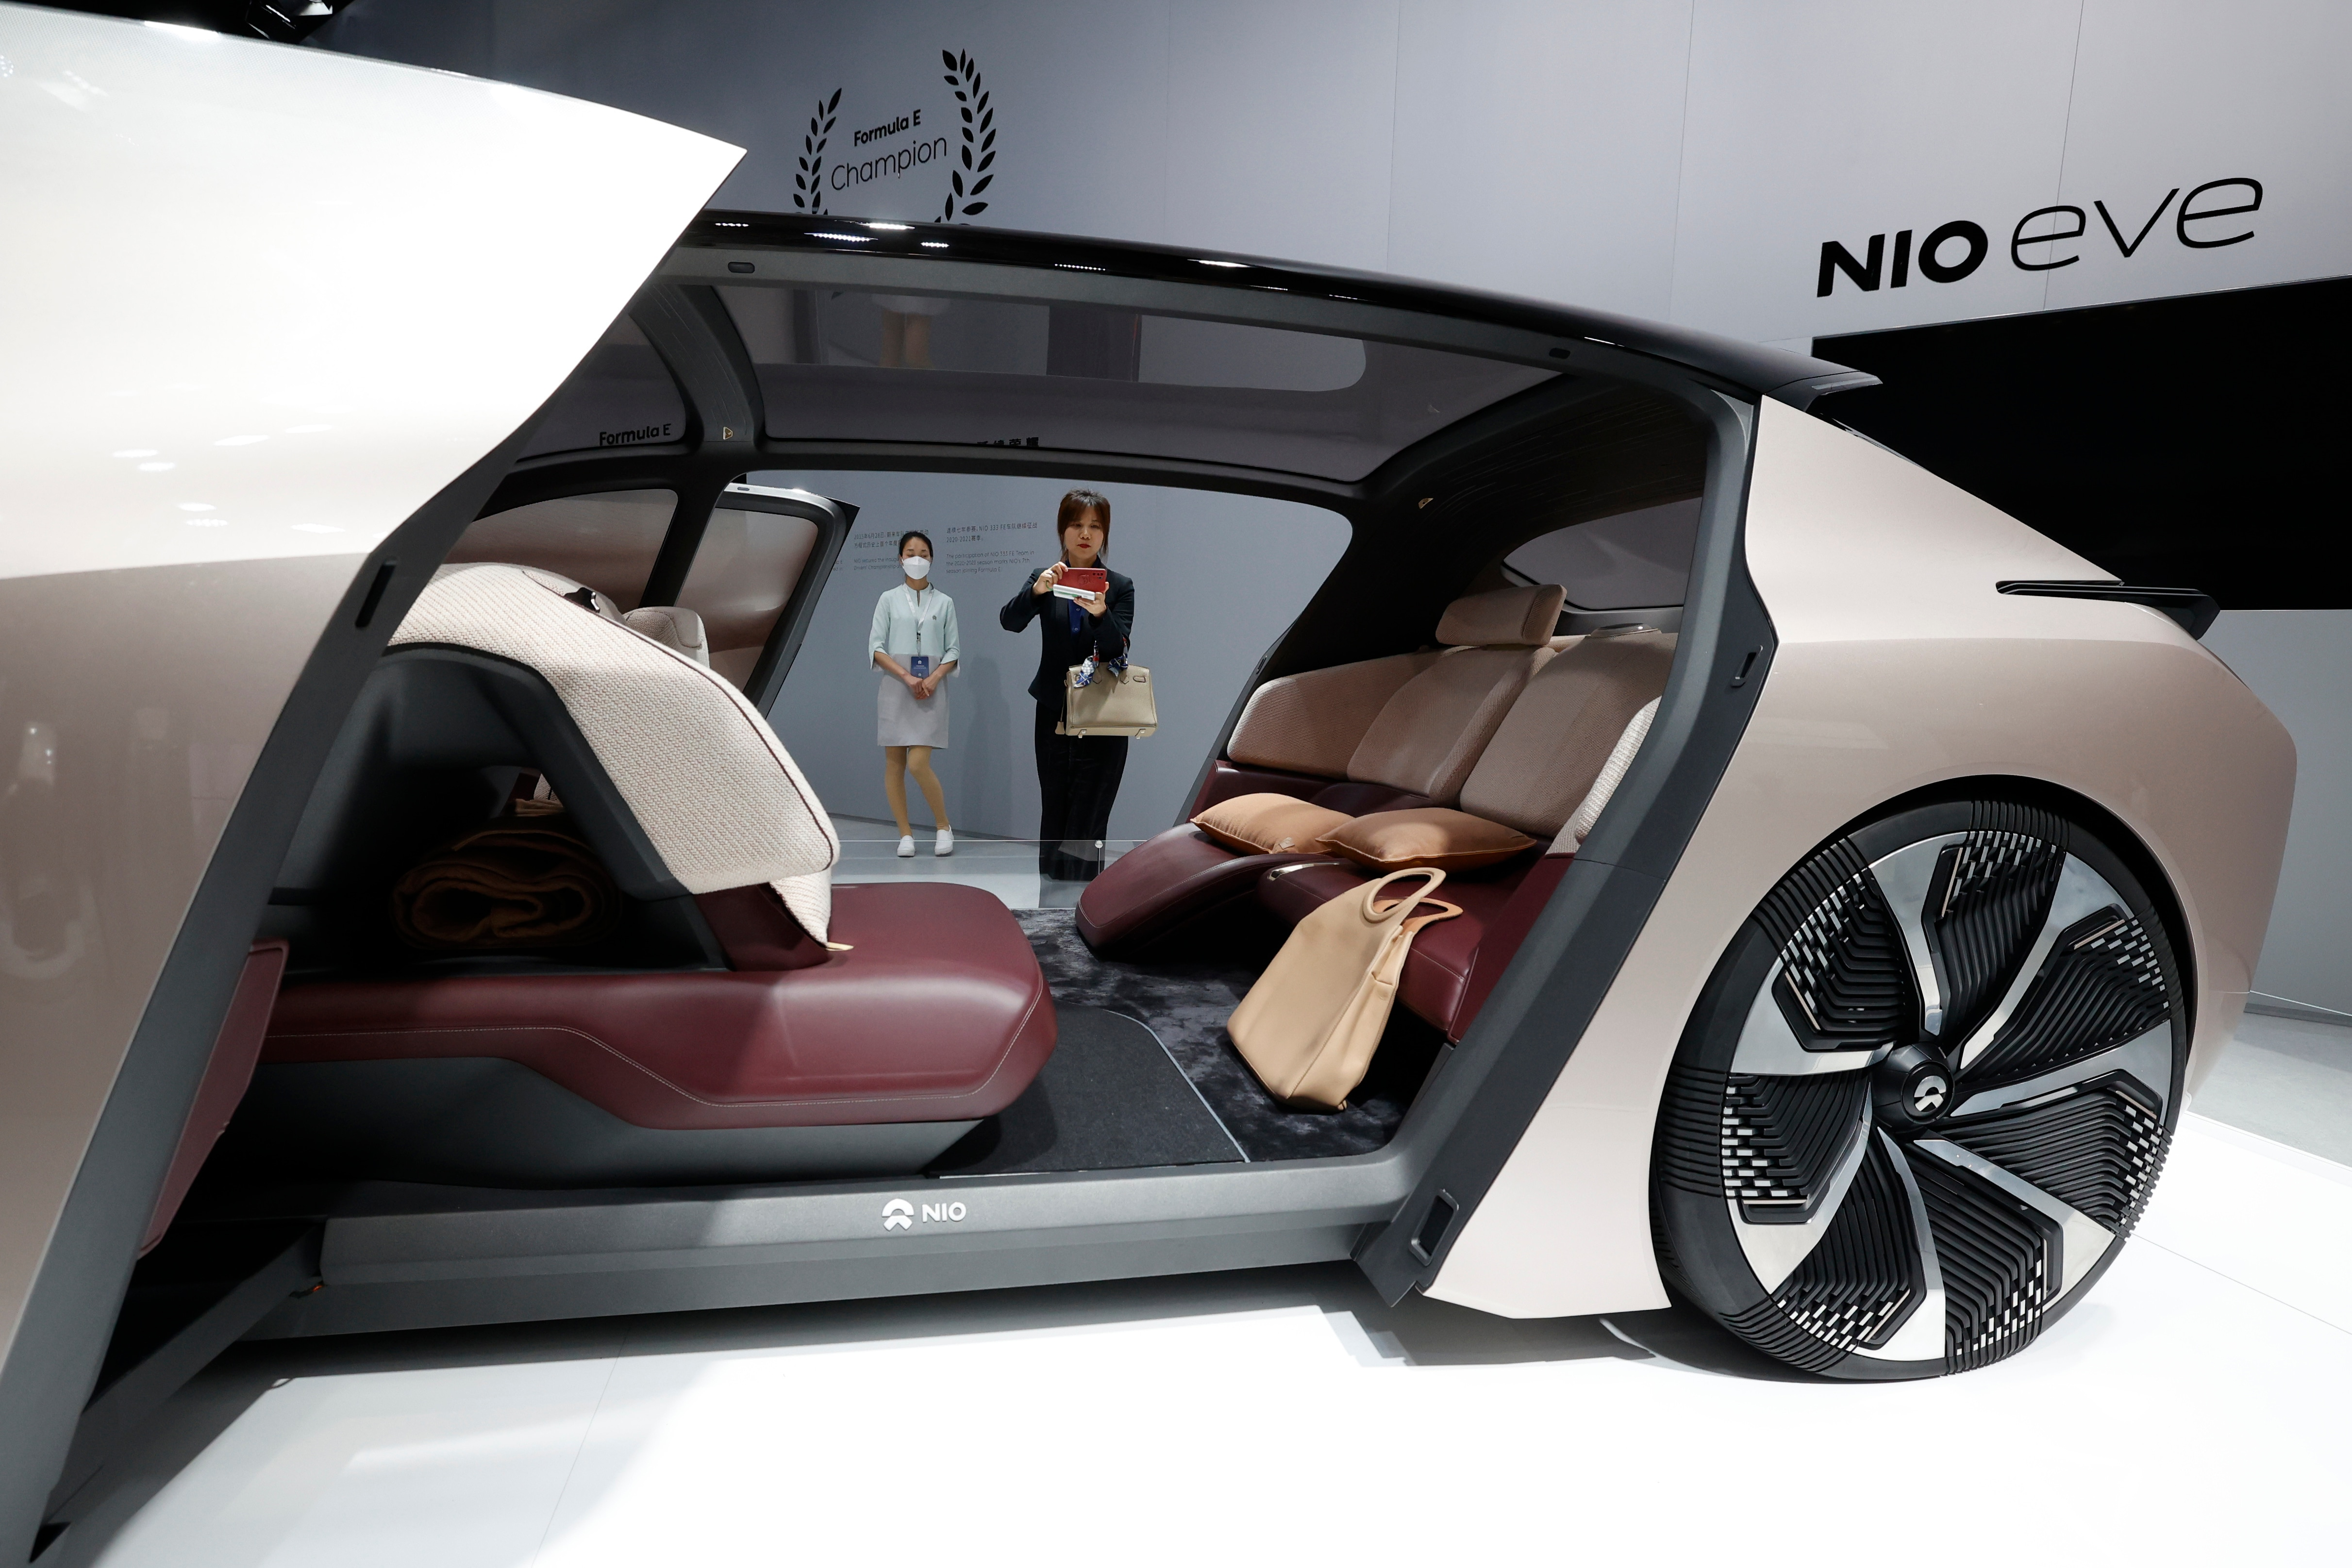 NIO has displayed its eve concept car at the Auto Show, A female visitor can be seen clicking pictures of the concept vehicle that seems to have huge interior seating space. (AP)